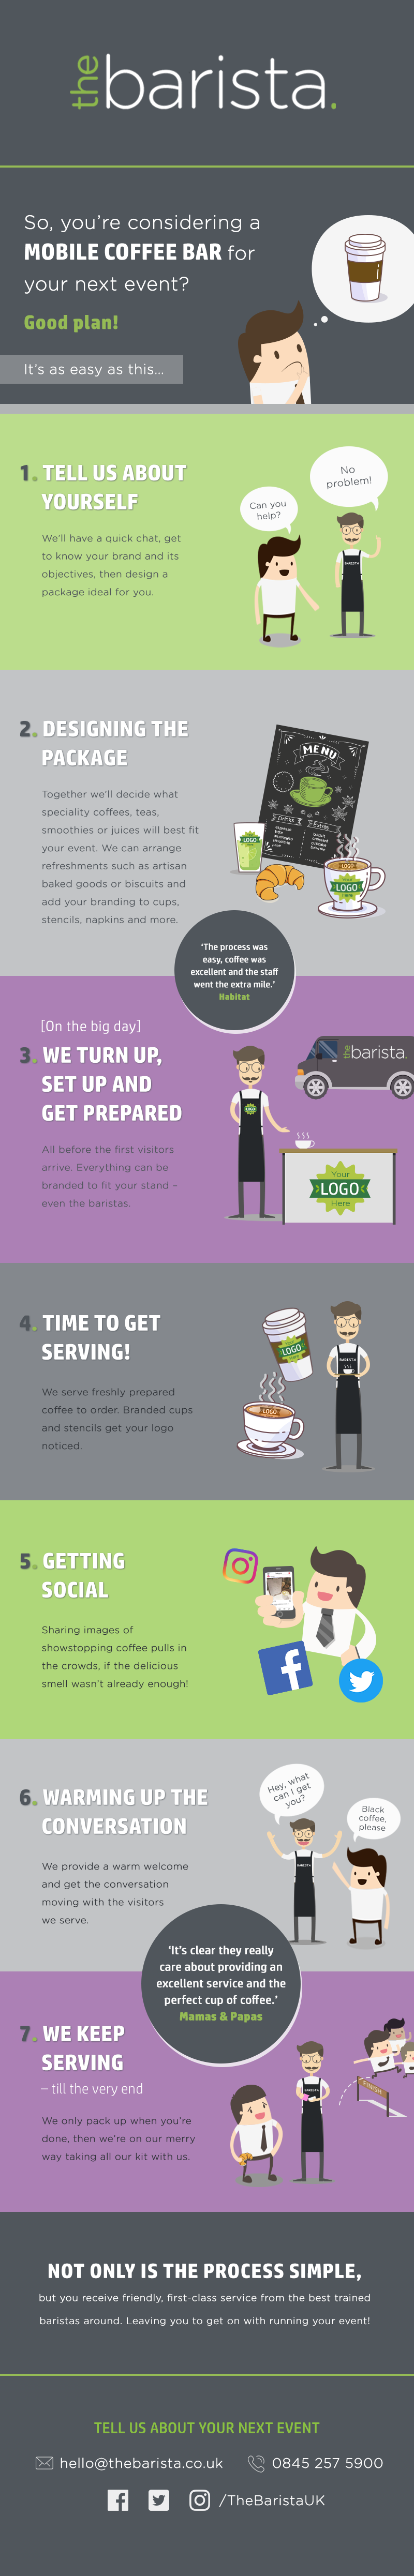 Barista-infographic-Our-Process